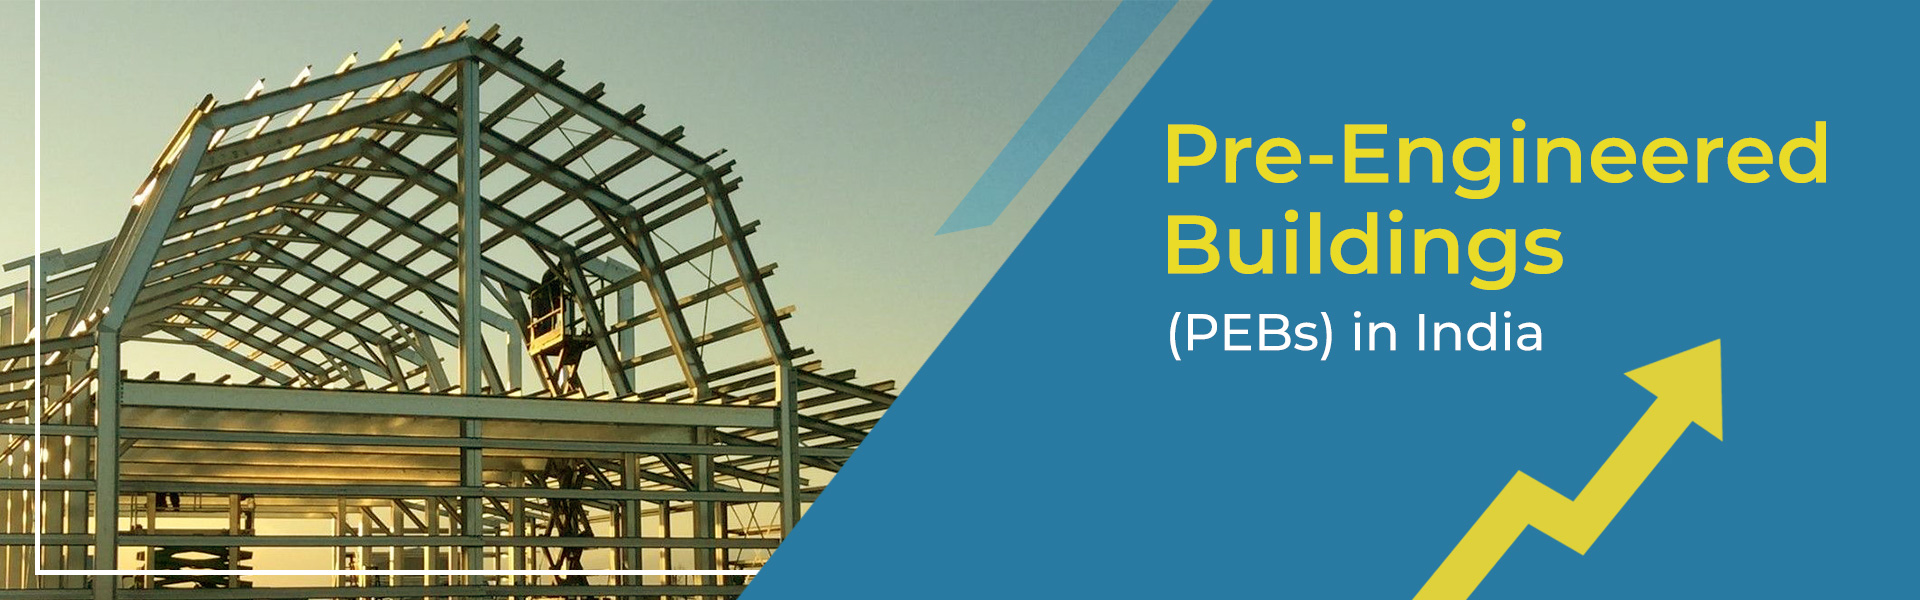 No 1 Pre Engineered Building Manufacturers (PEBs) in India